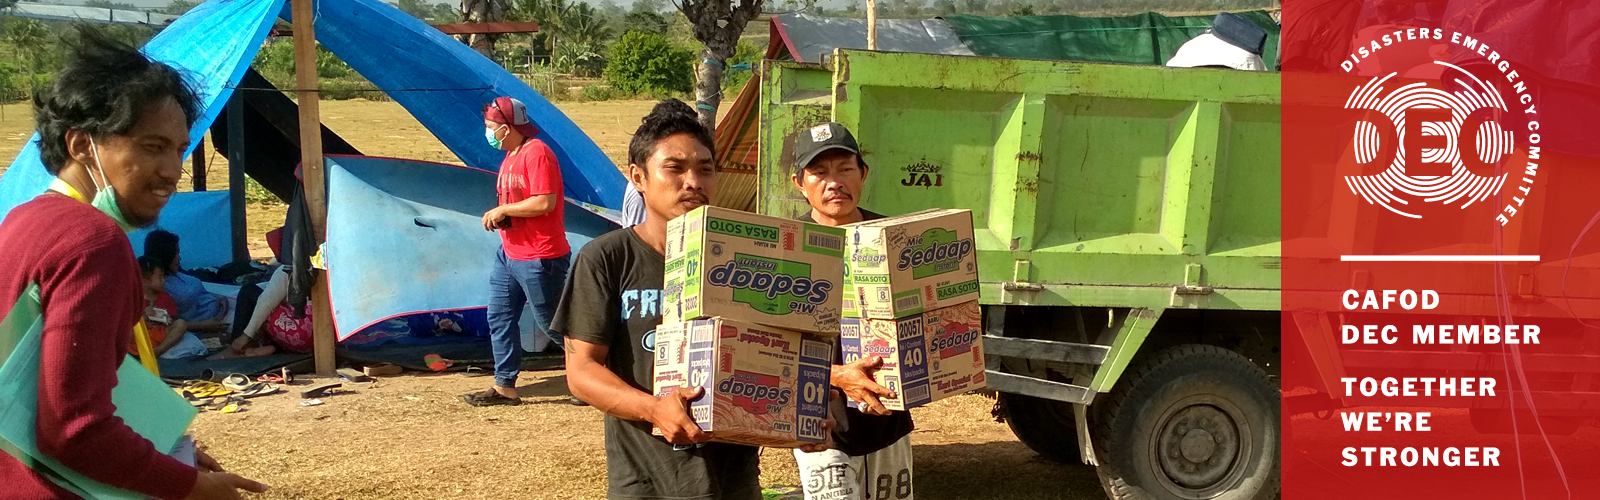 Aid is getting through to help people affected by the Tsunami in Indonesia. CAFOD is supporting as part of the DEC.